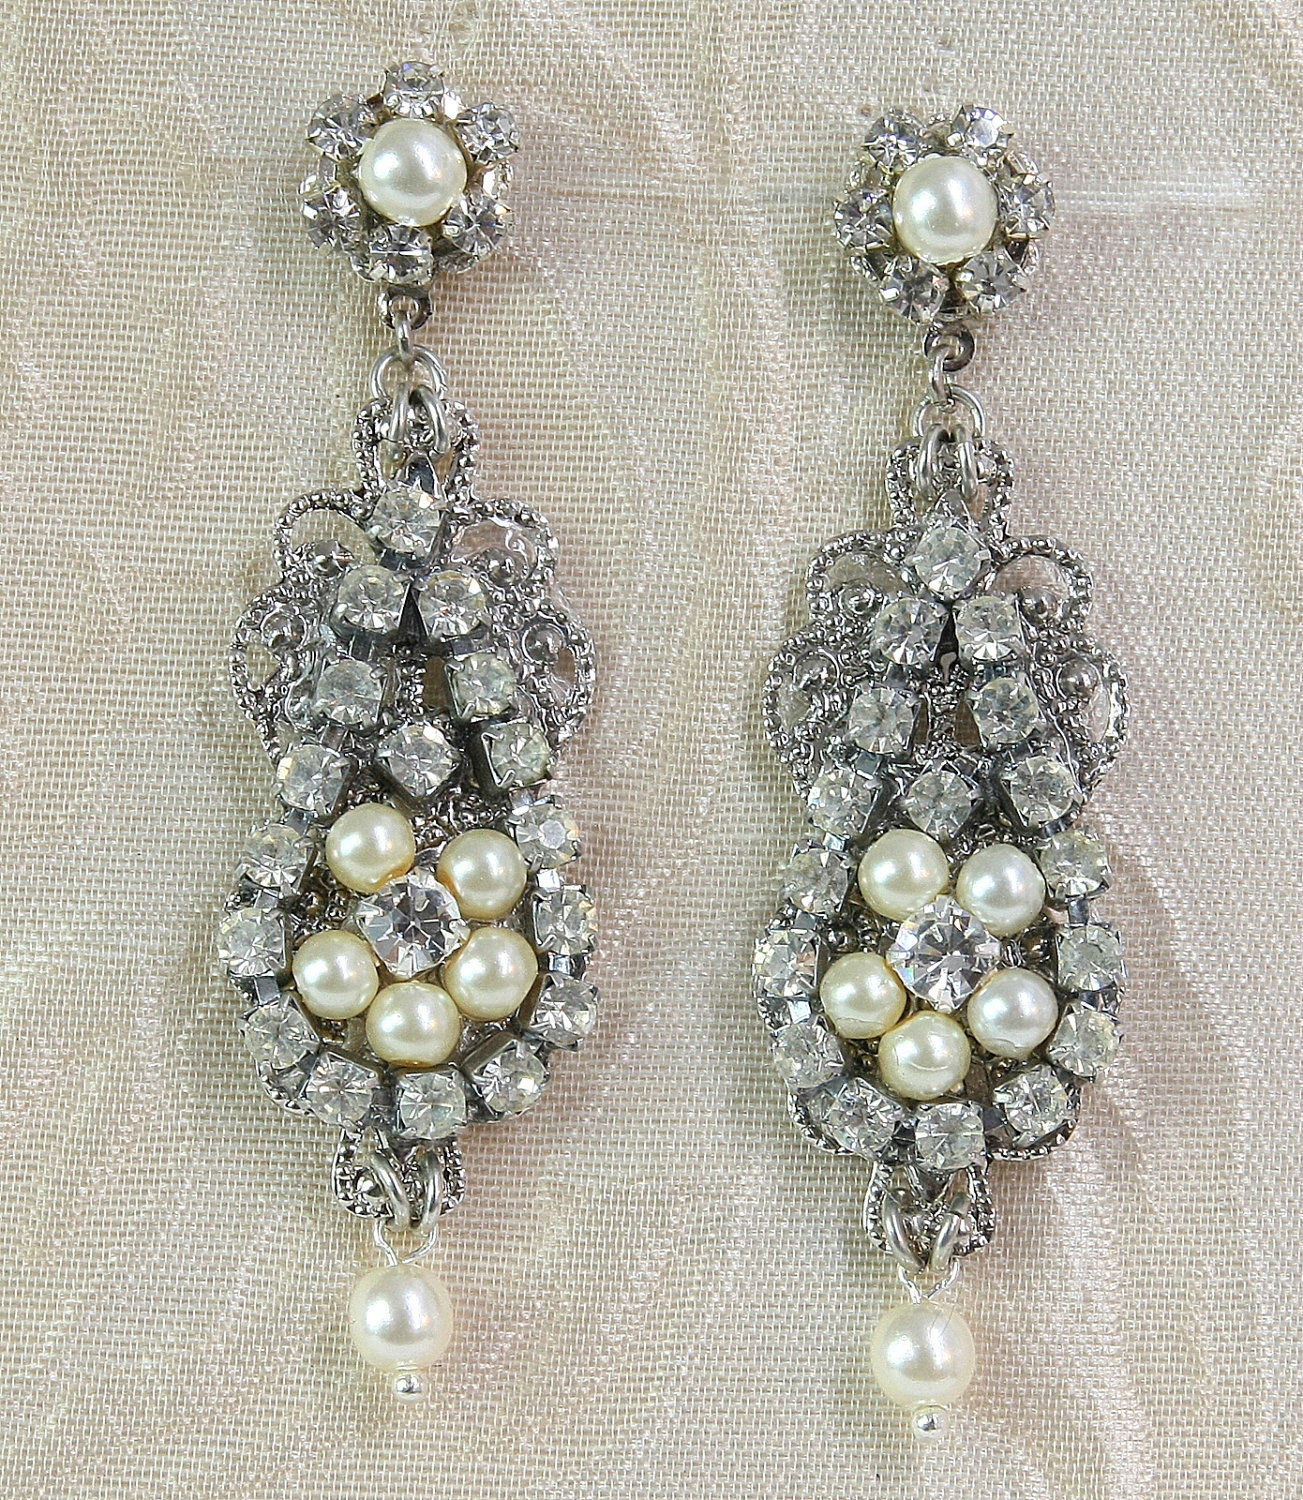 bridal jewelry bride earrings sibo collection designs hair adornments opal sibodesigns shop style